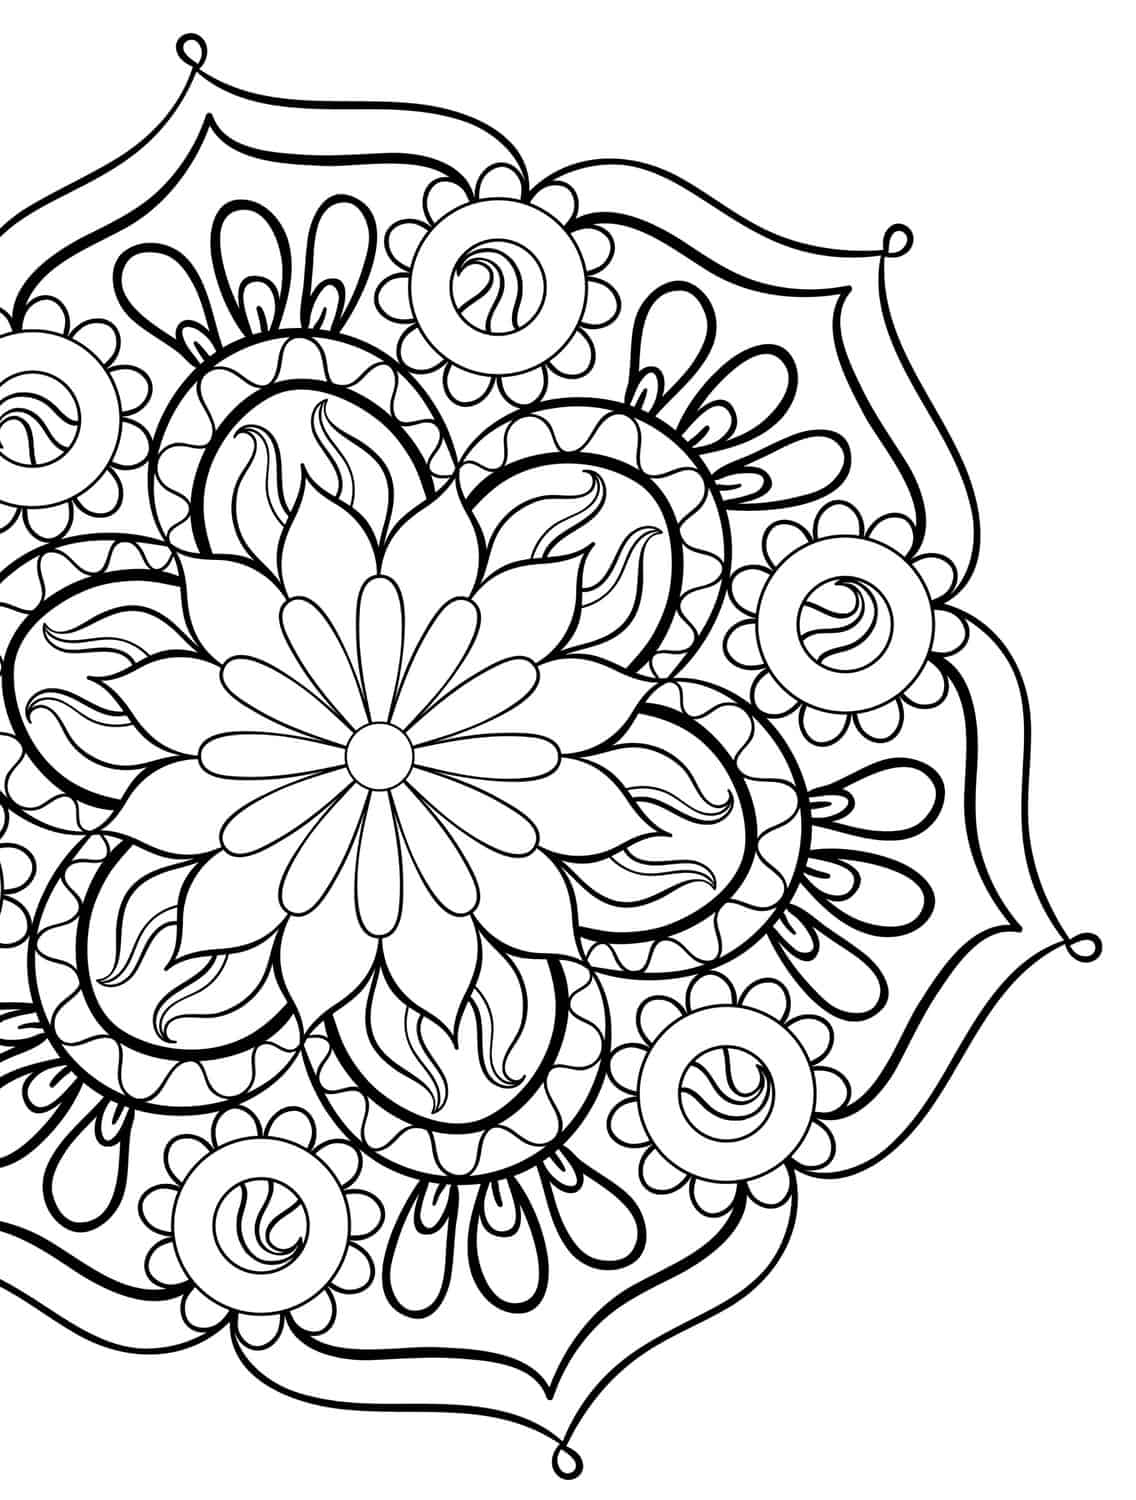 Beautiful coloring pages for adults coloring pages Coloring book for adults free download